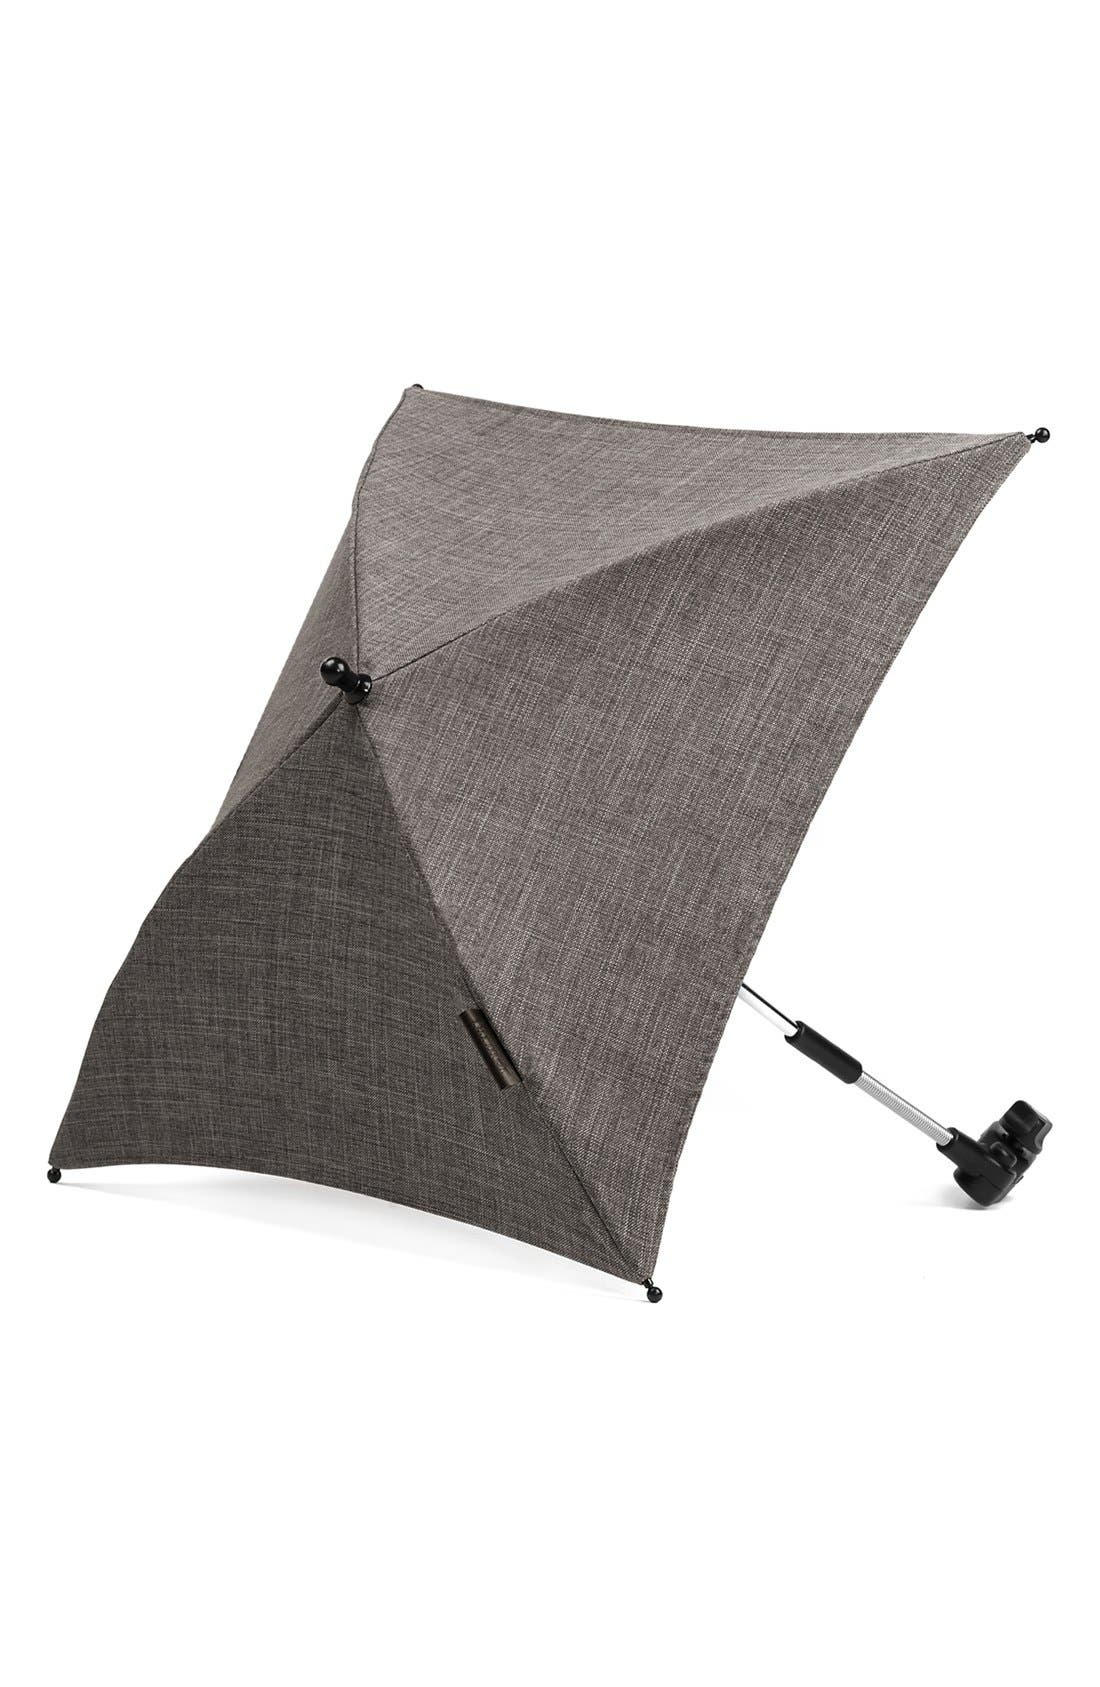 'Evo - Famer Earth' Stroller Umbrella,                         Main,                         color, BROWN